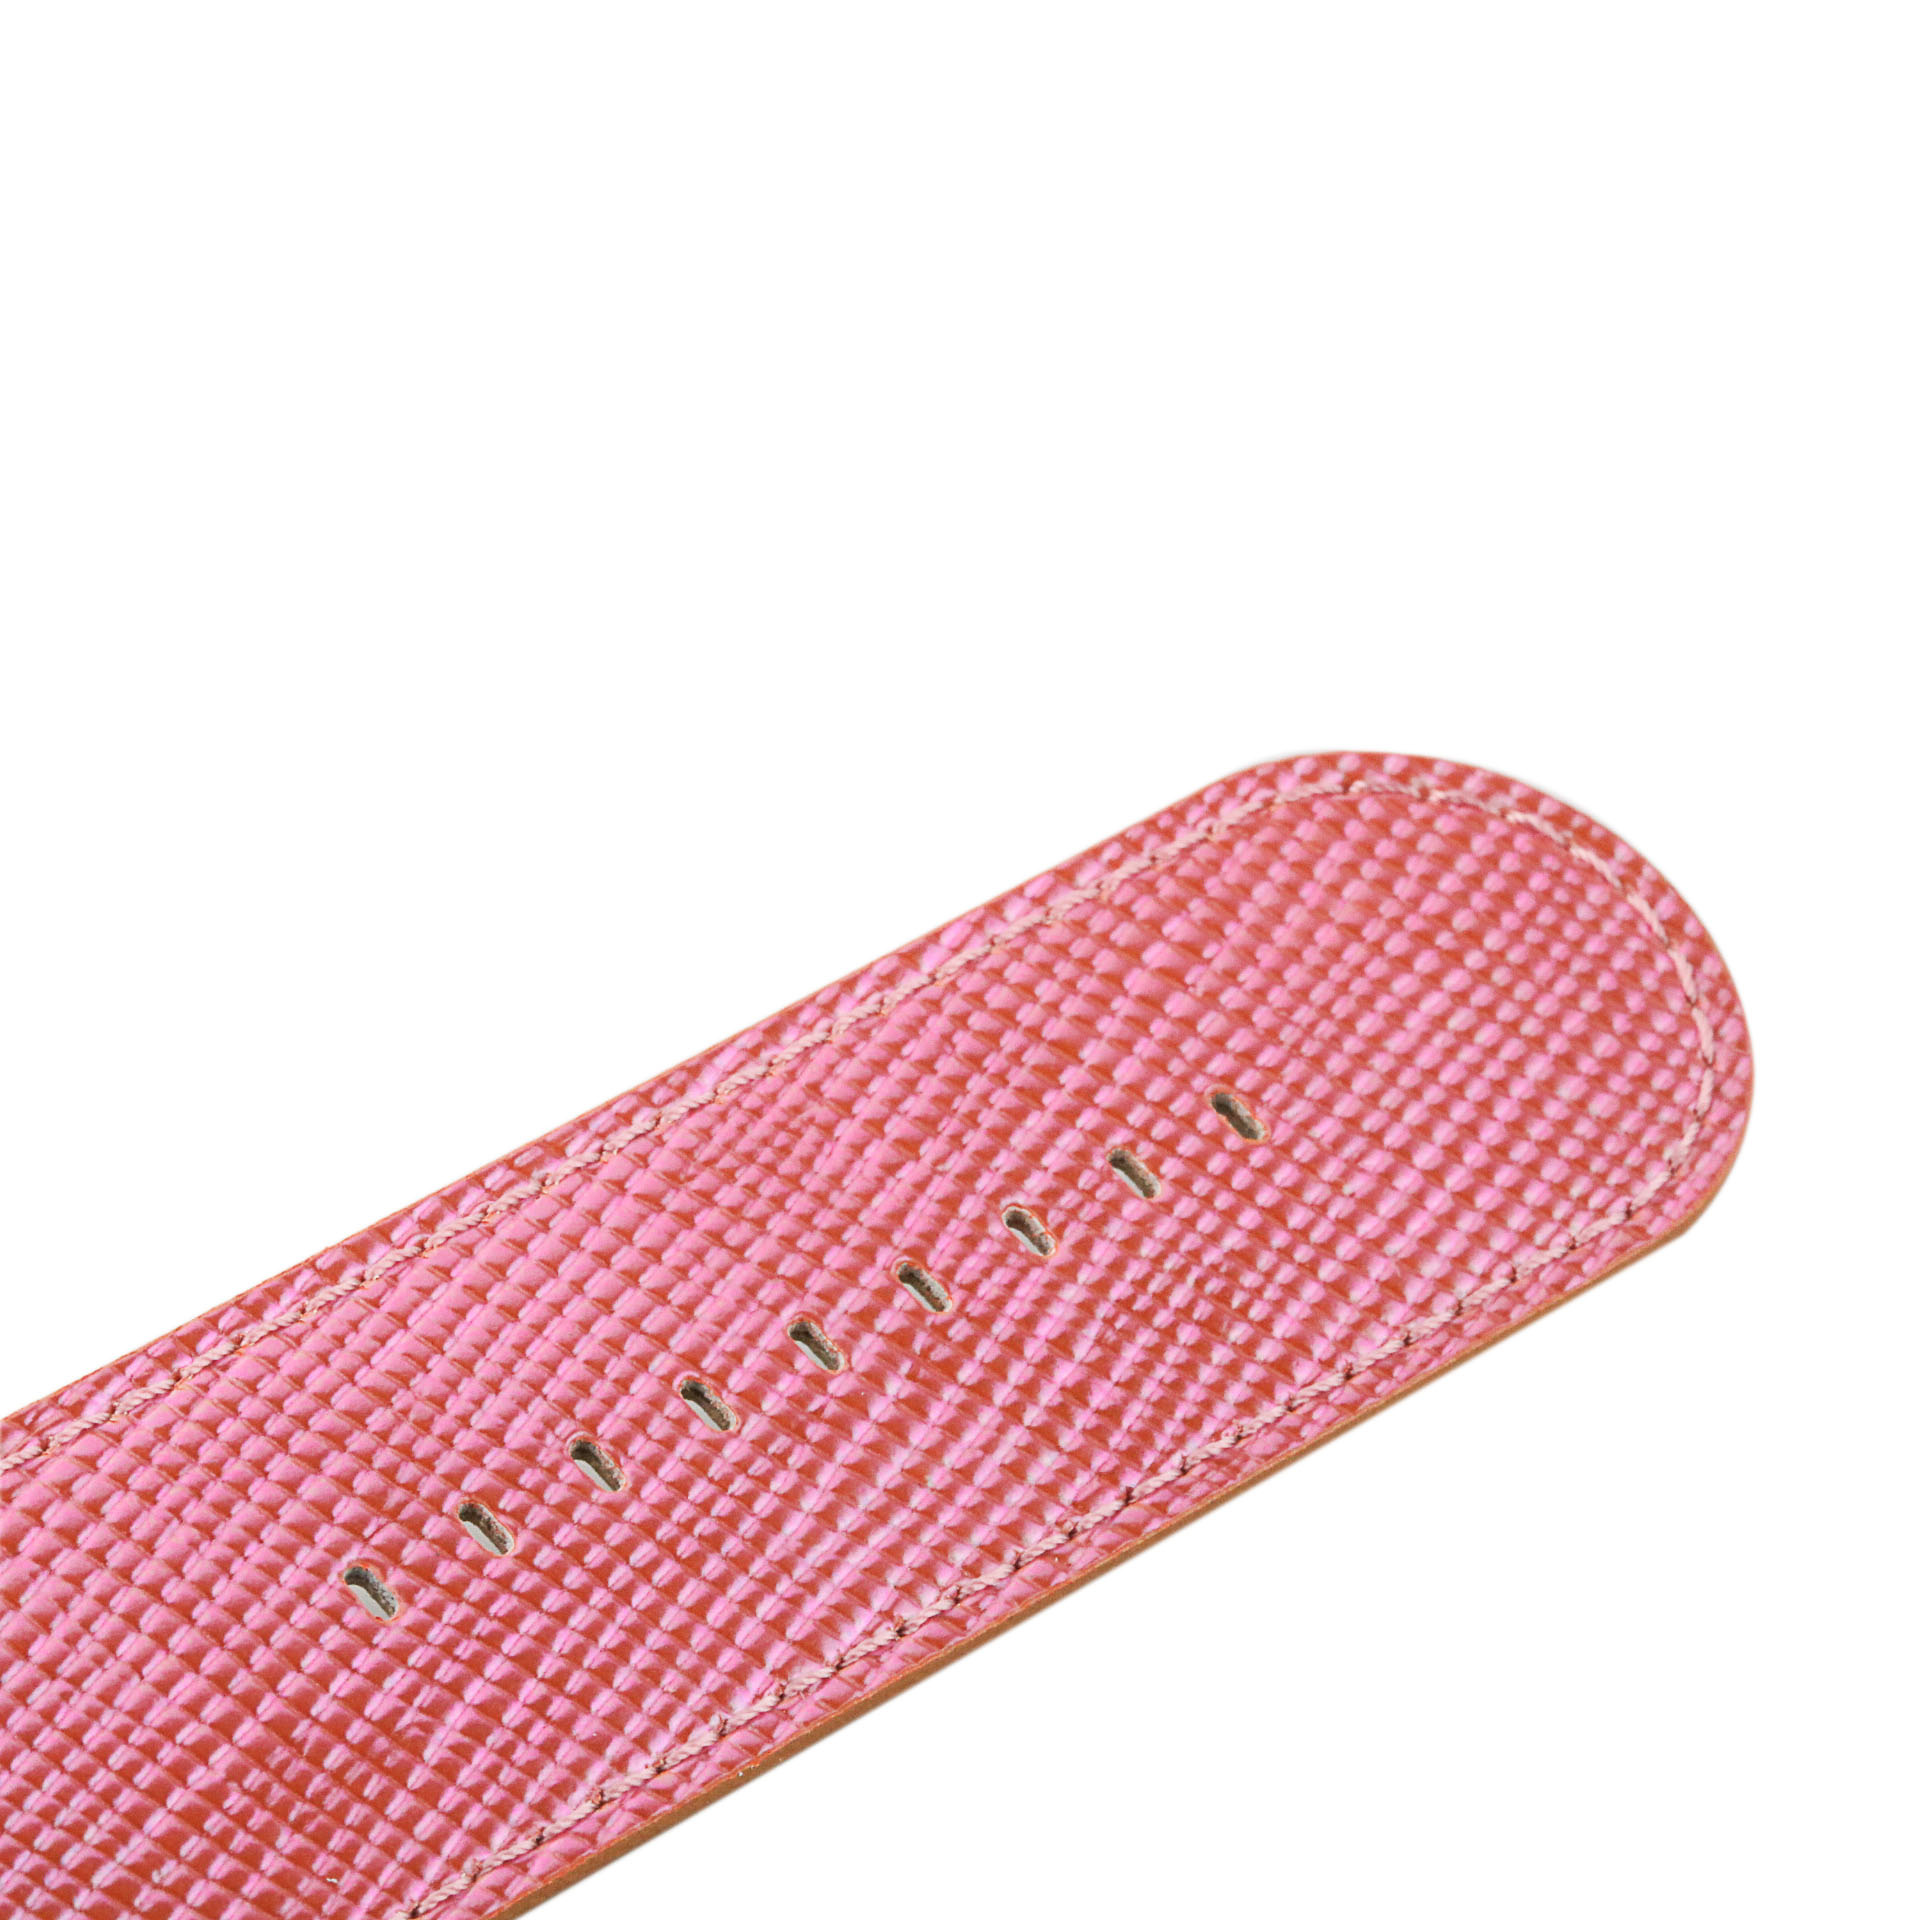 S.T.A.M.P.S Watchband Pearl pink